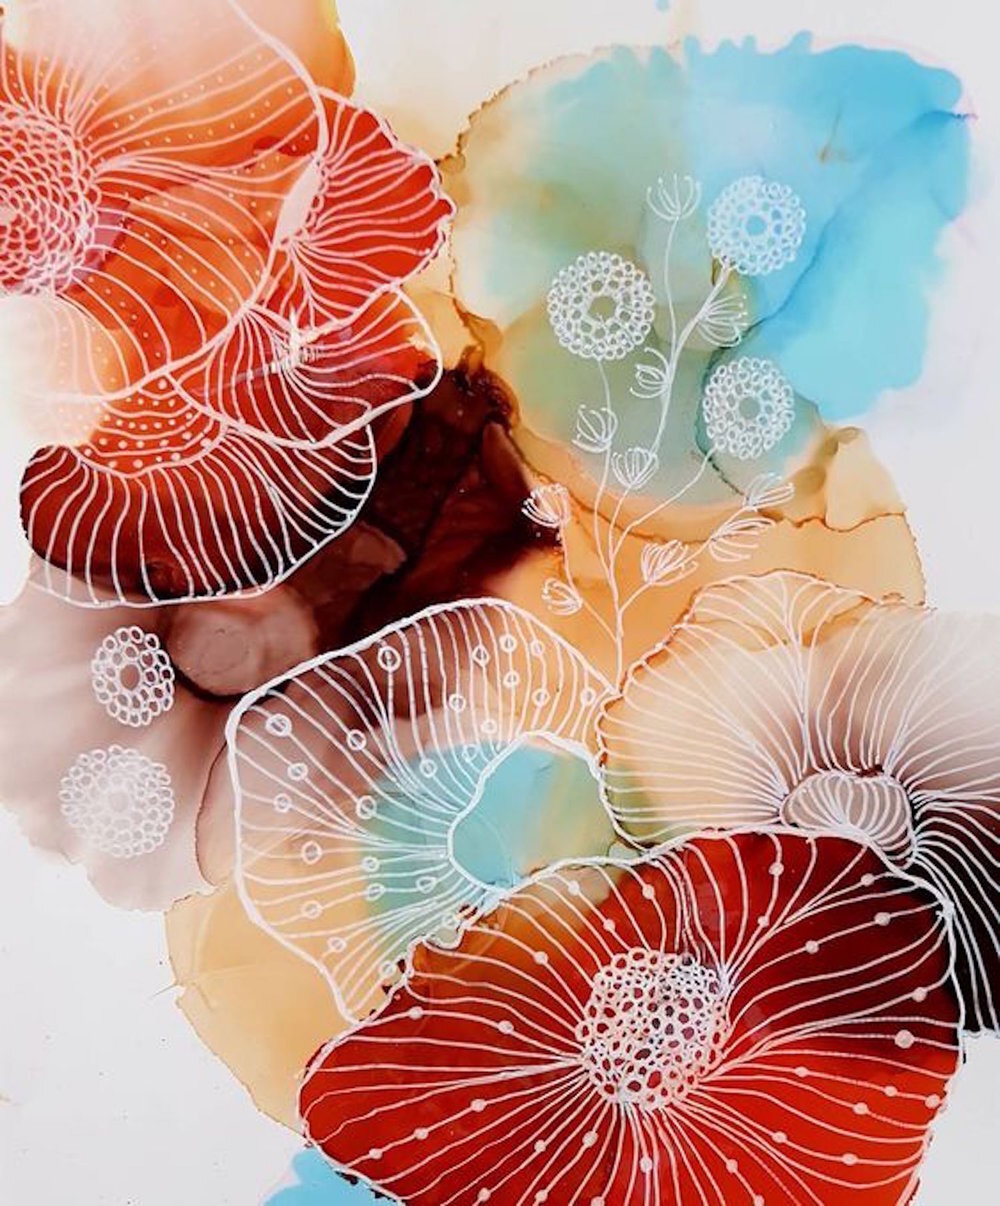 alcohol-ink-abstract-florals.jpg